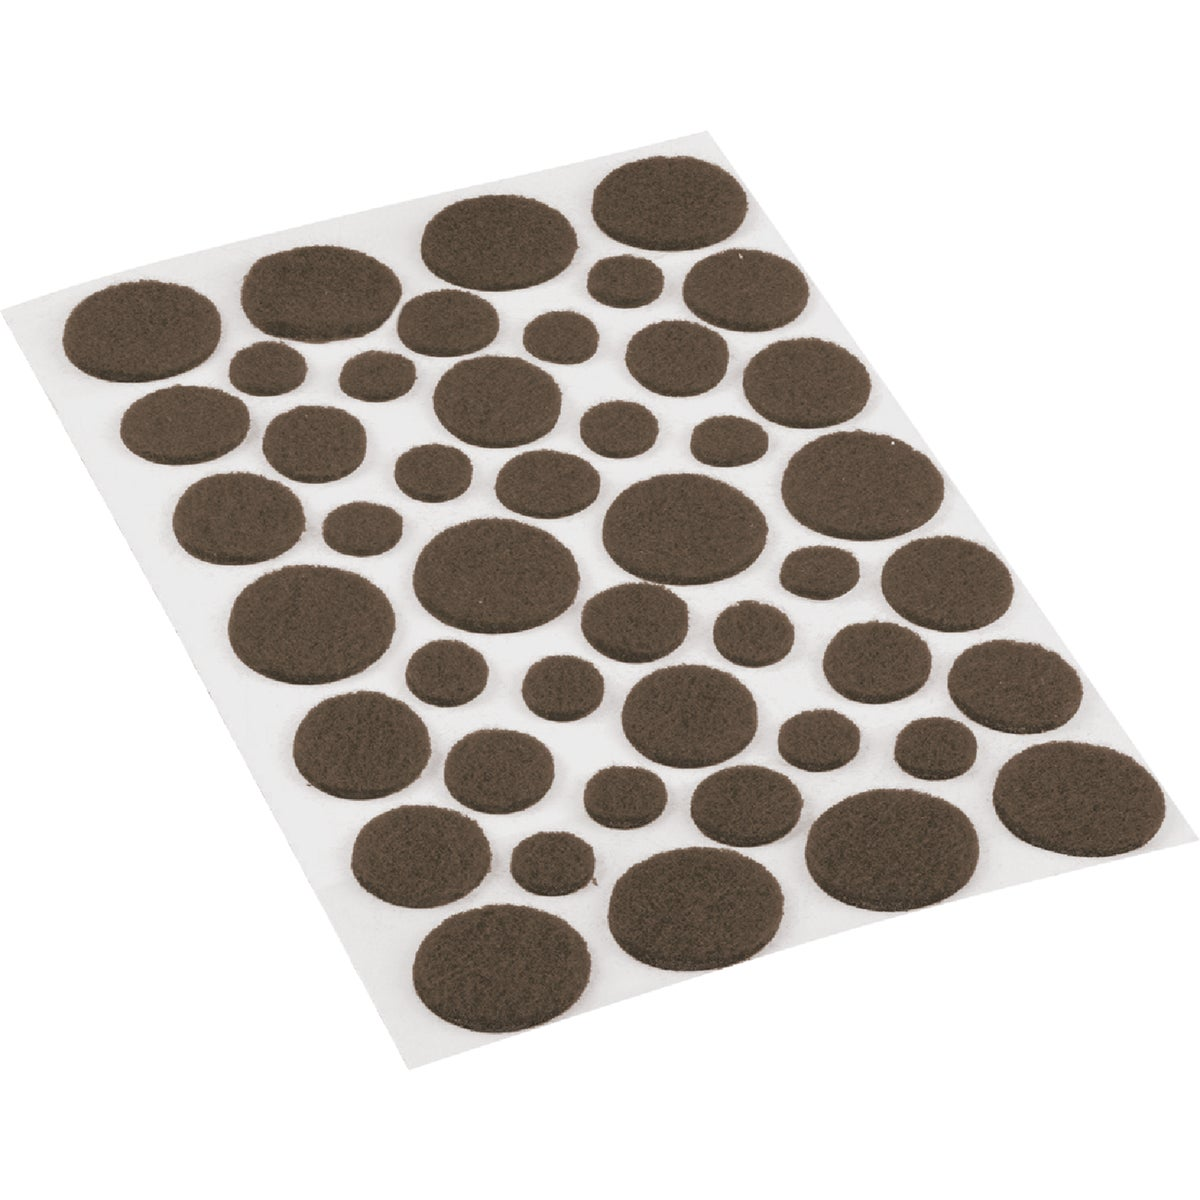 46PCS ASST GR FELT PADS - 227686 by Shepherd Hardware